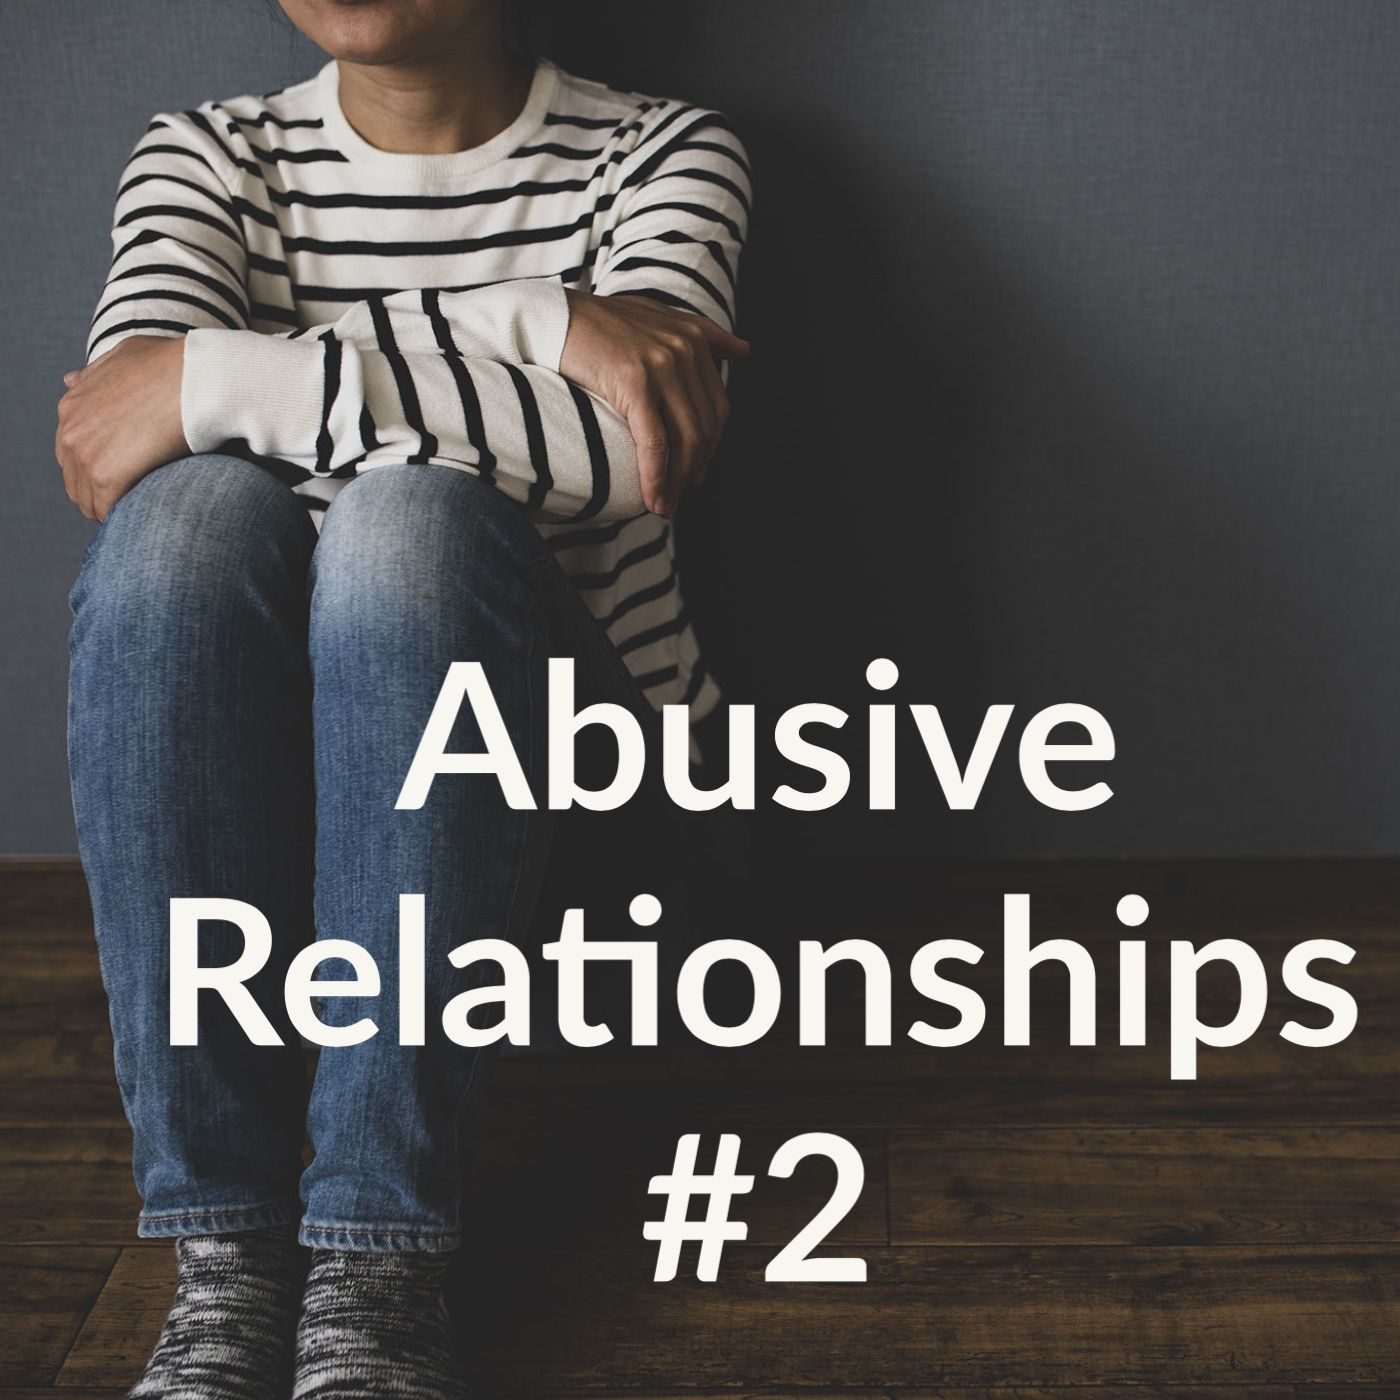 Abusive Relationships #2